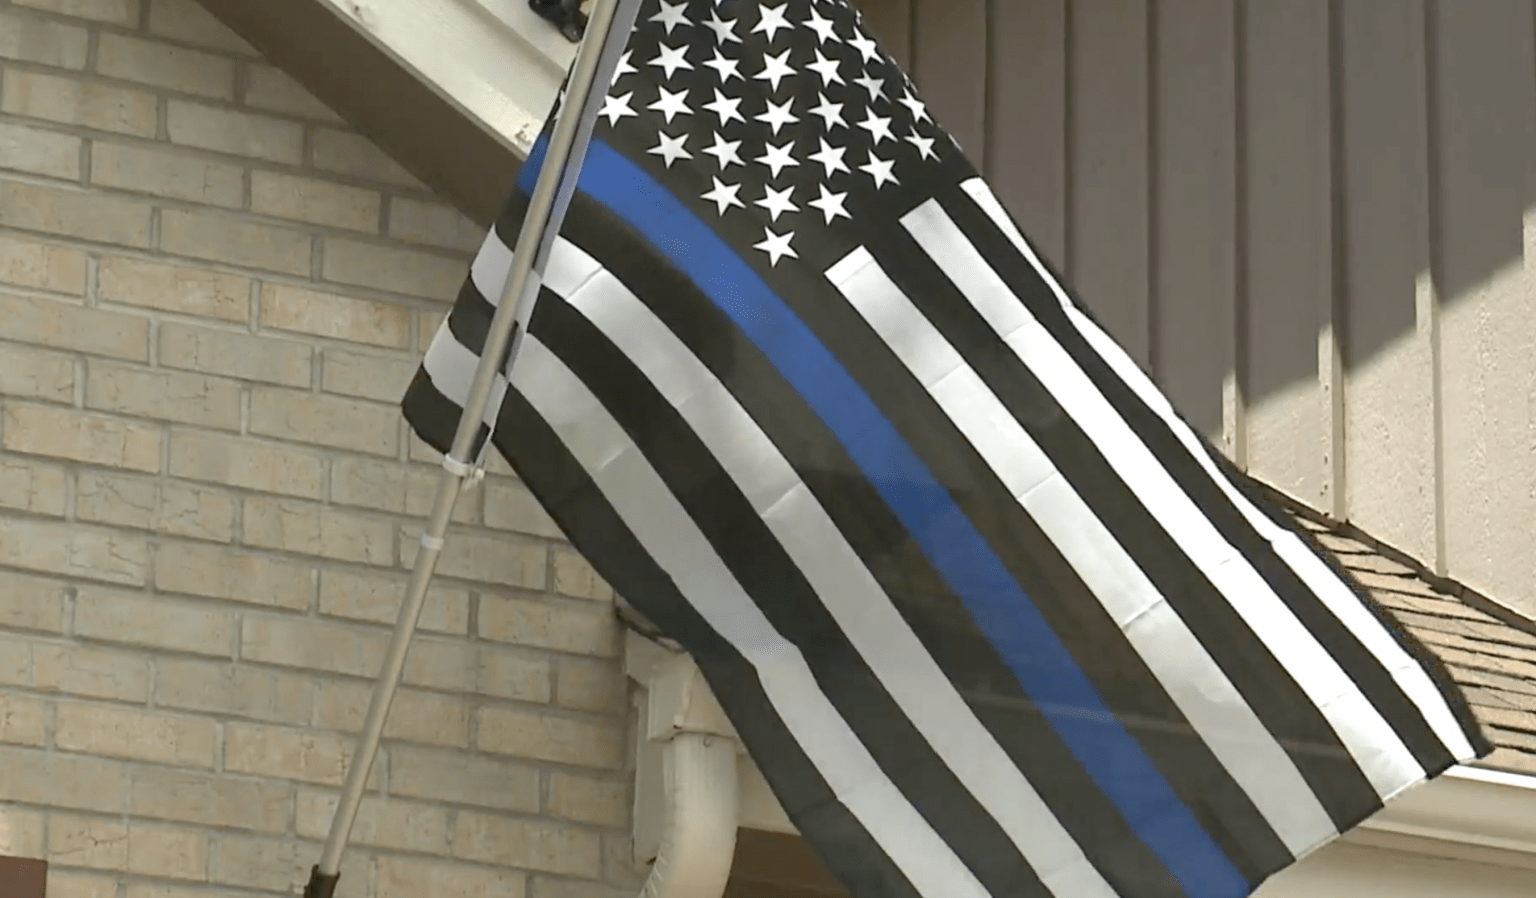 Homeowner's association demands police chaplain remove blue line flag...imagine if it was a Black Lives Matter flag?